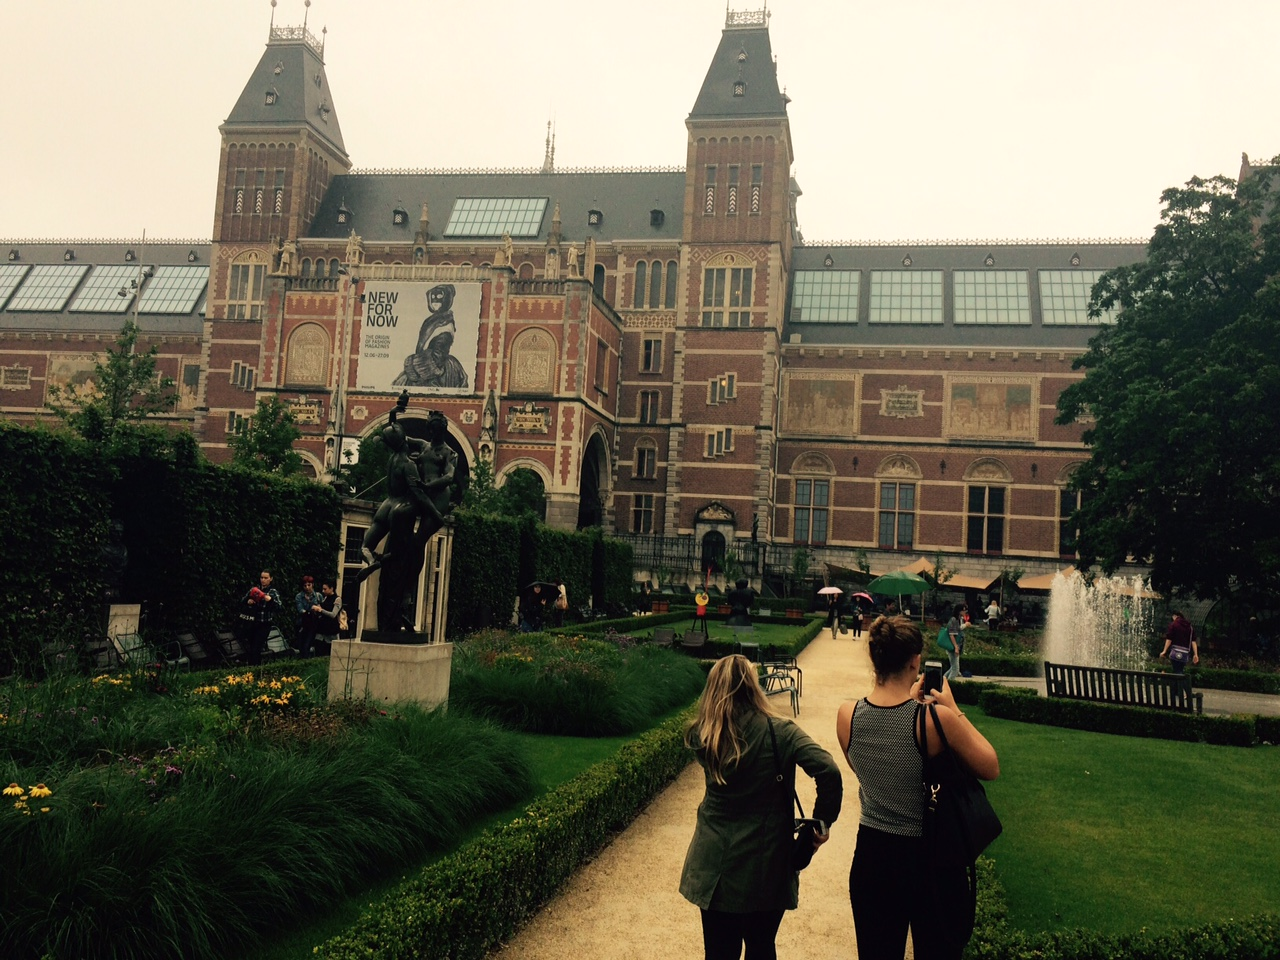 The museum's surrounded by a gorgeous park.  The Dutch are proud of their brick work, and for good reason.  The architecture here is stunning.